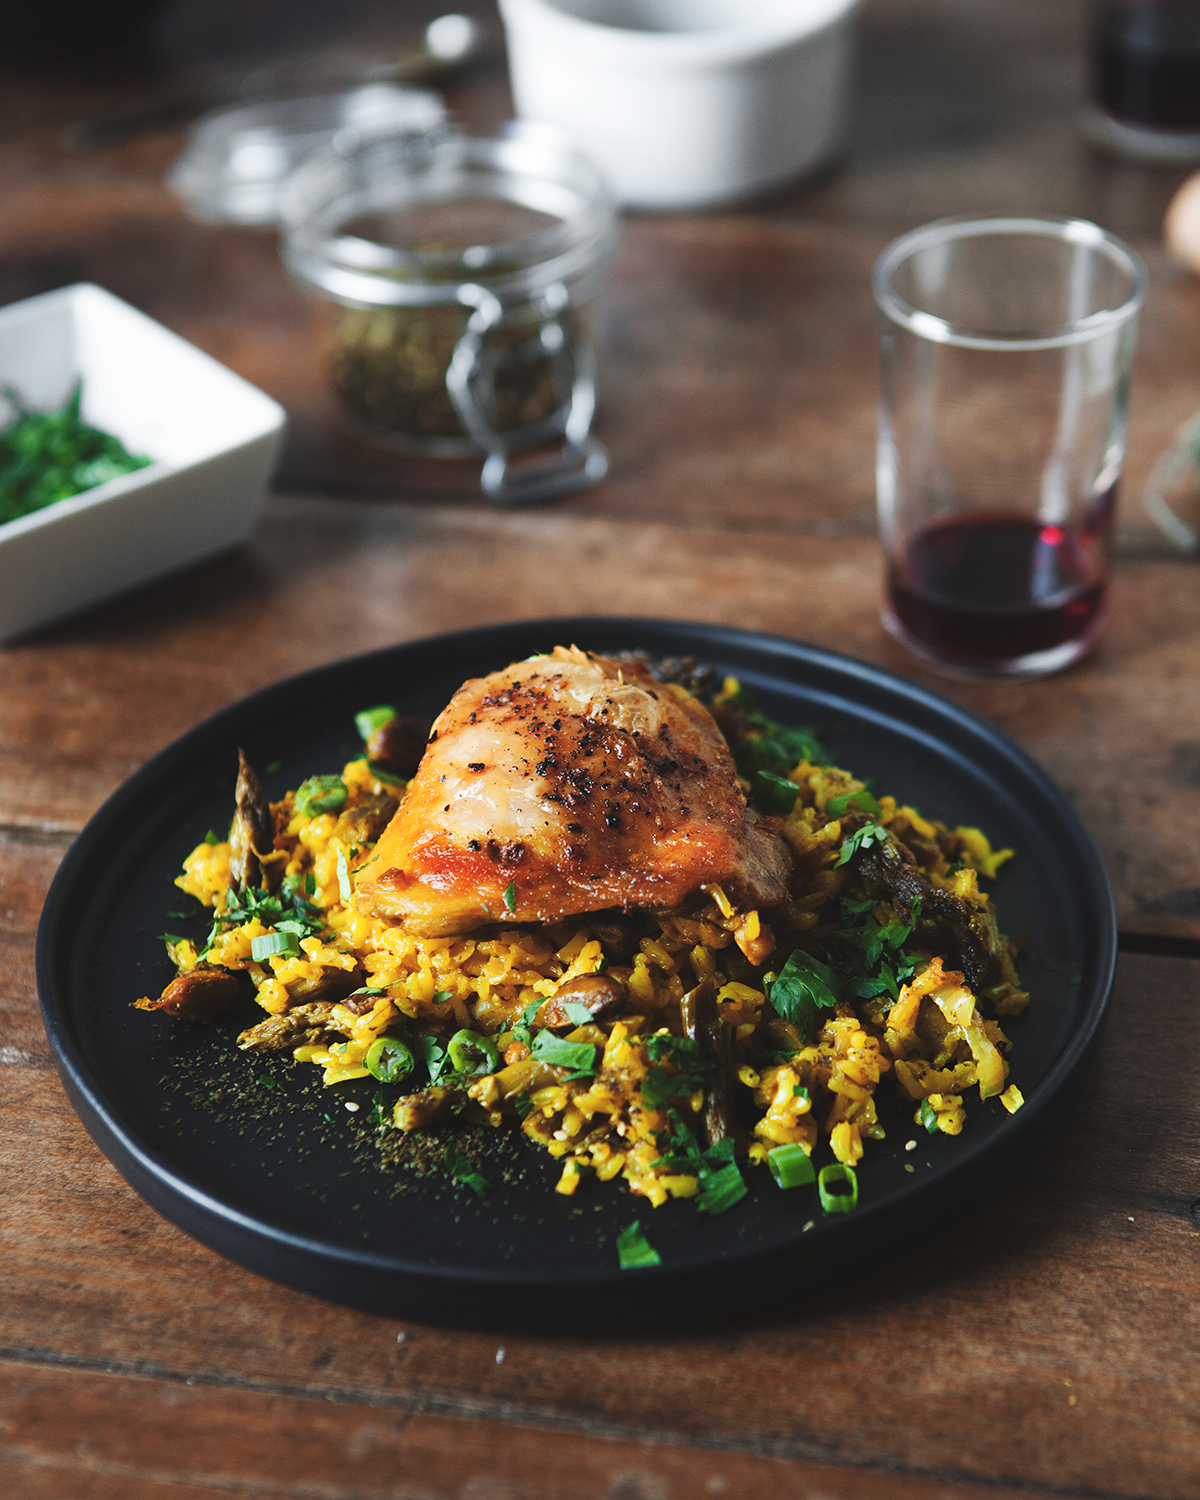 ABHSS_Middle-Eastern-Spiced-Chicken-with-Baked-Rice-and-Pistachio_0224.jpg